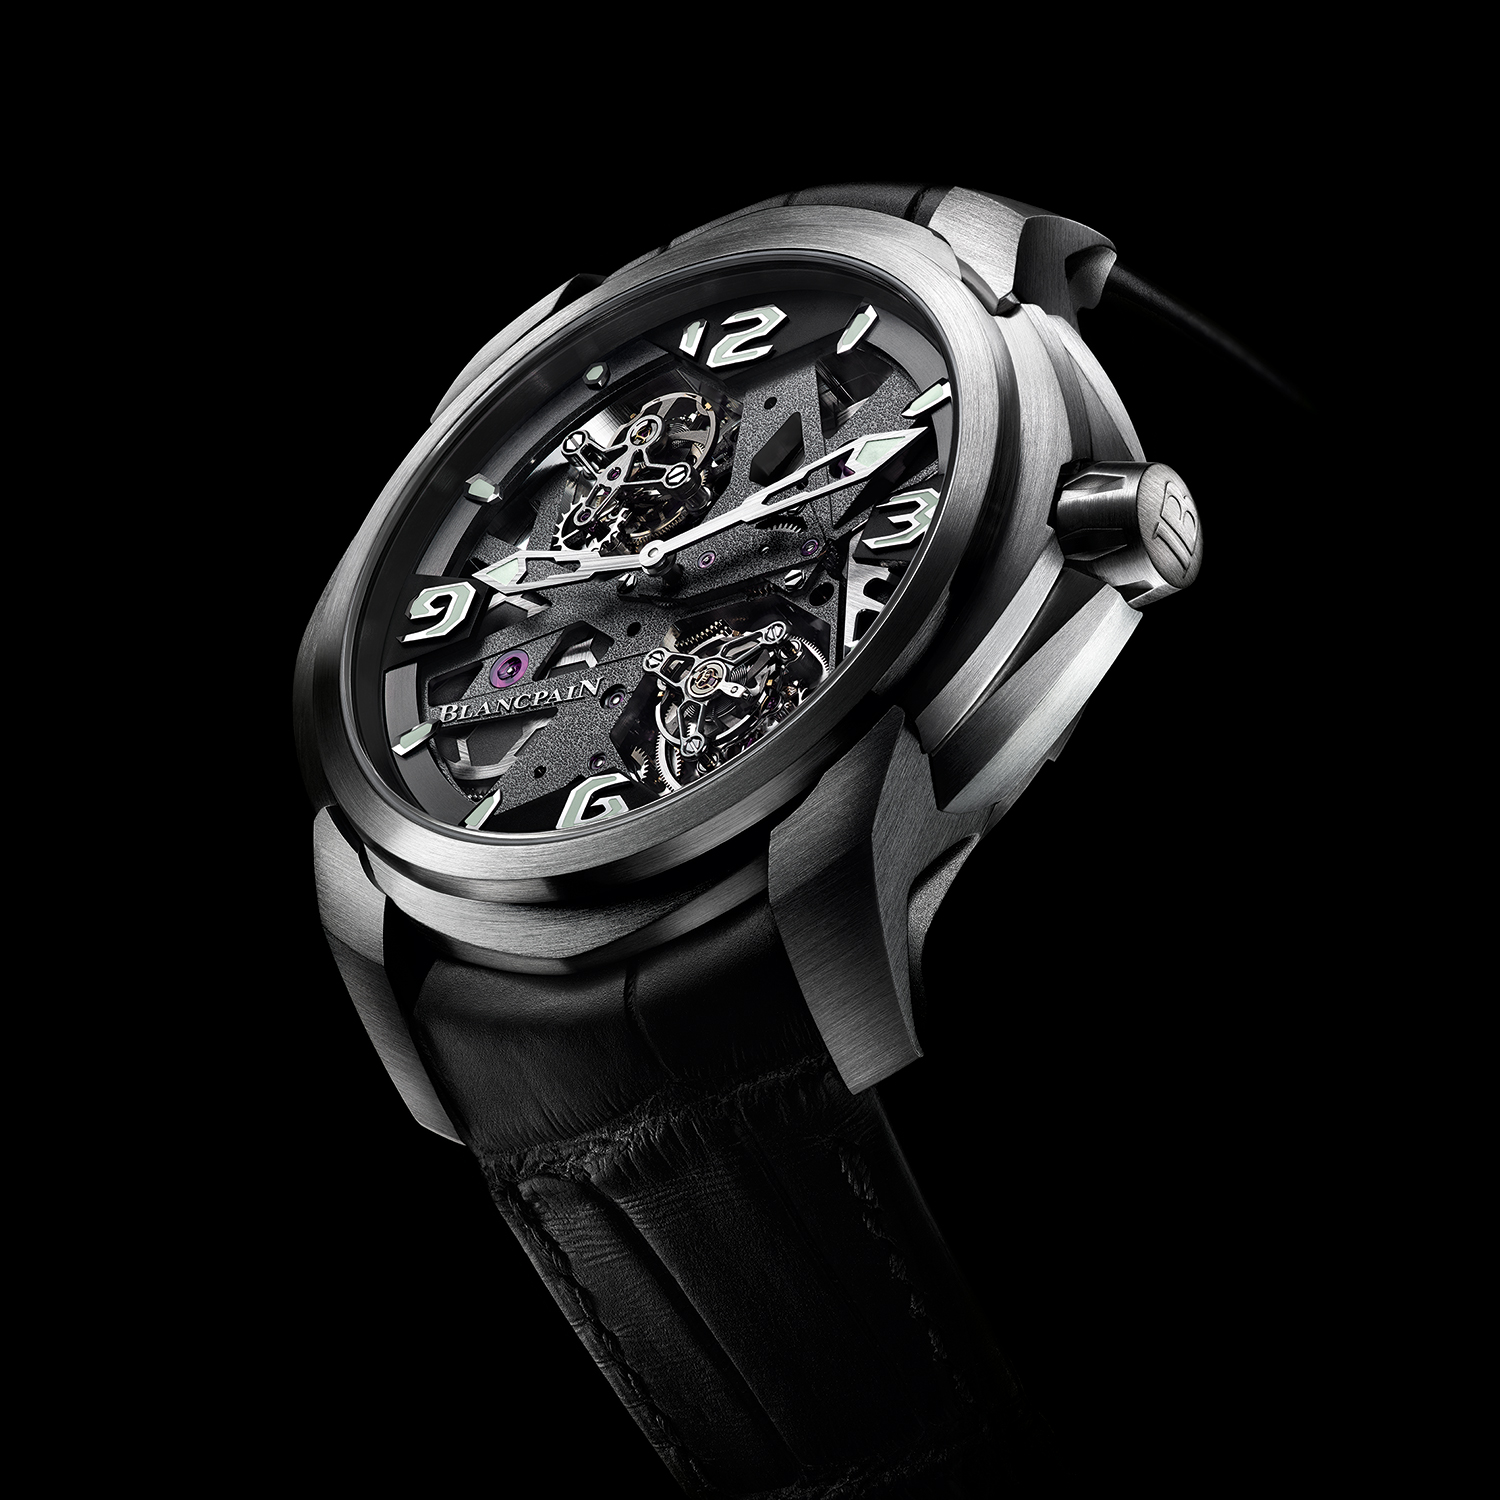 blancpain l-evolution collection tourbillon carrousel